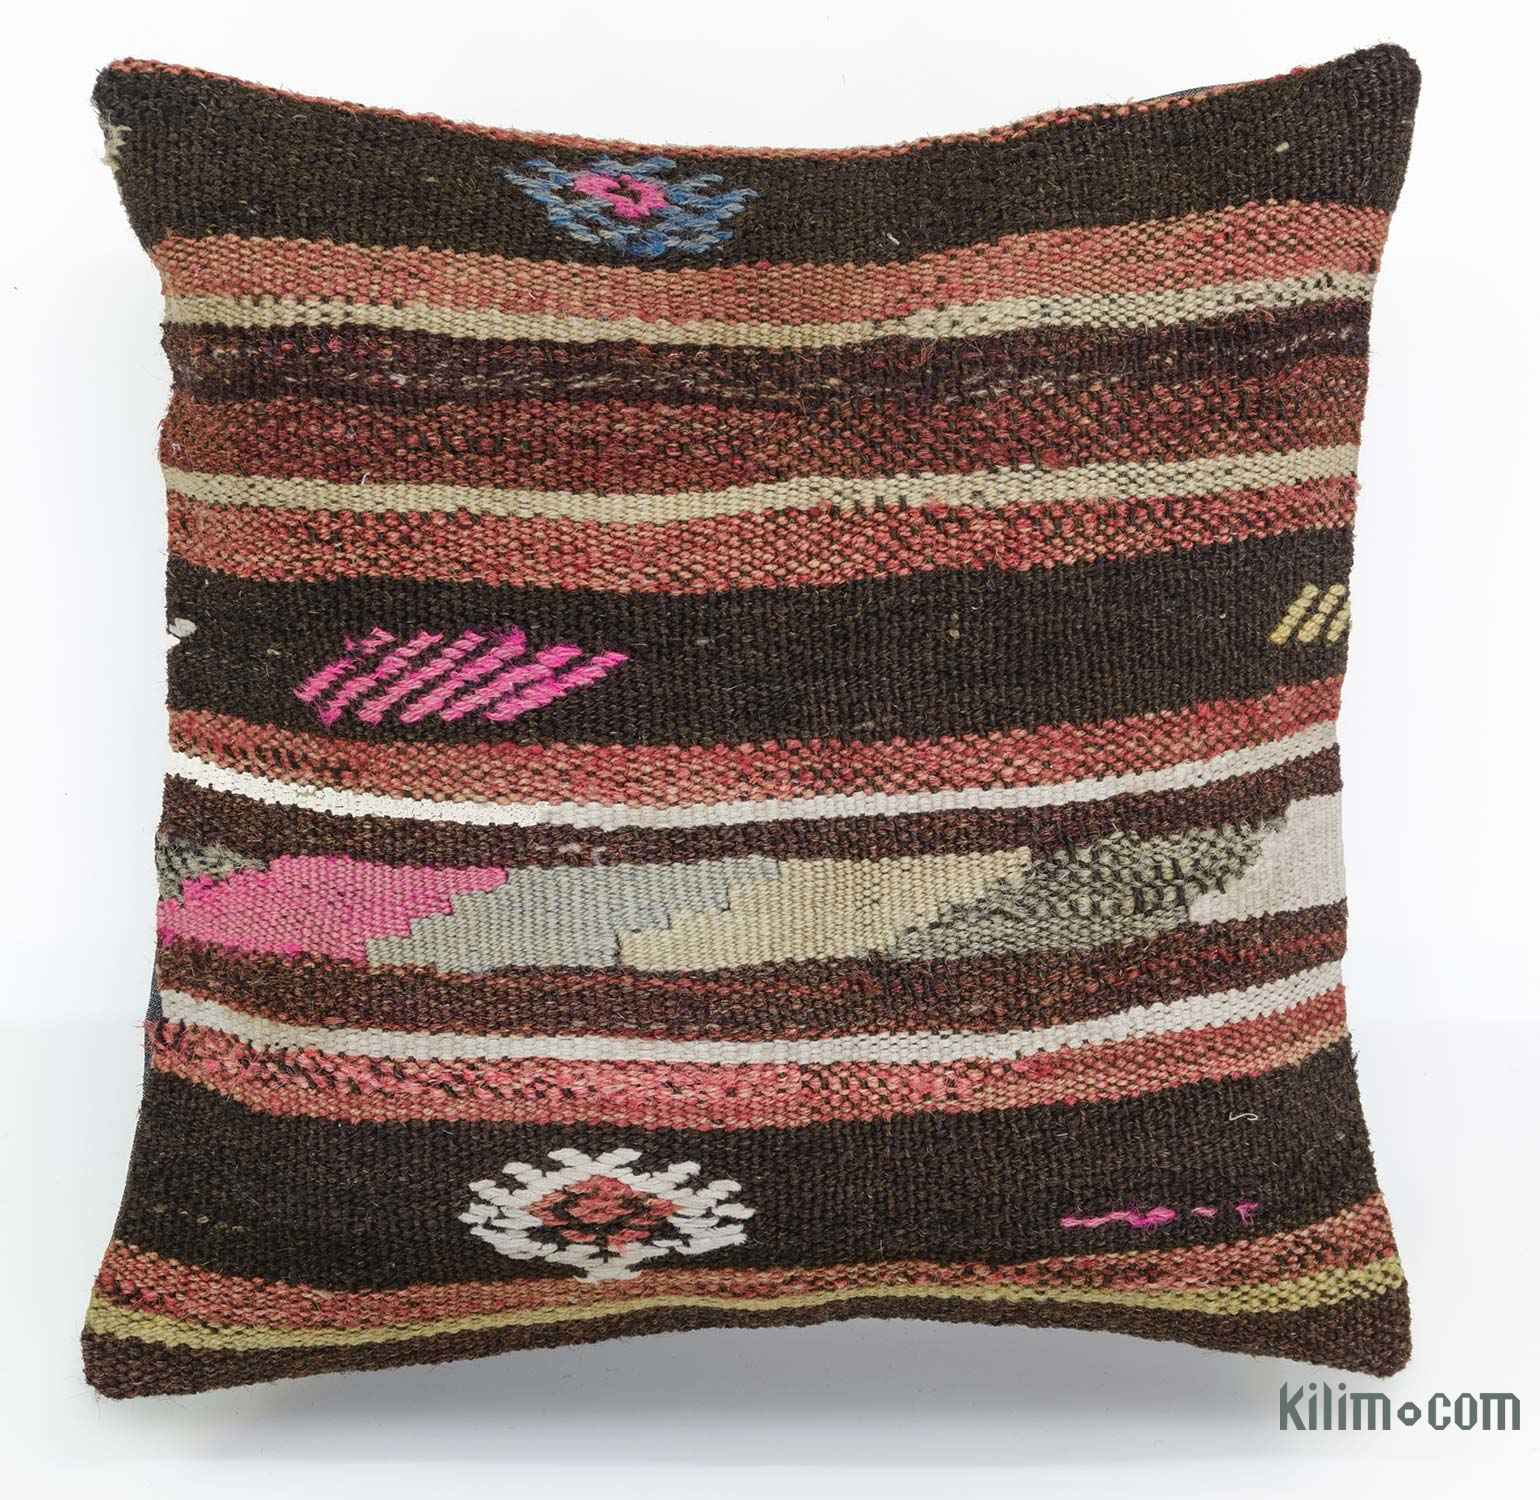 kilim pillow cover pattern cushion